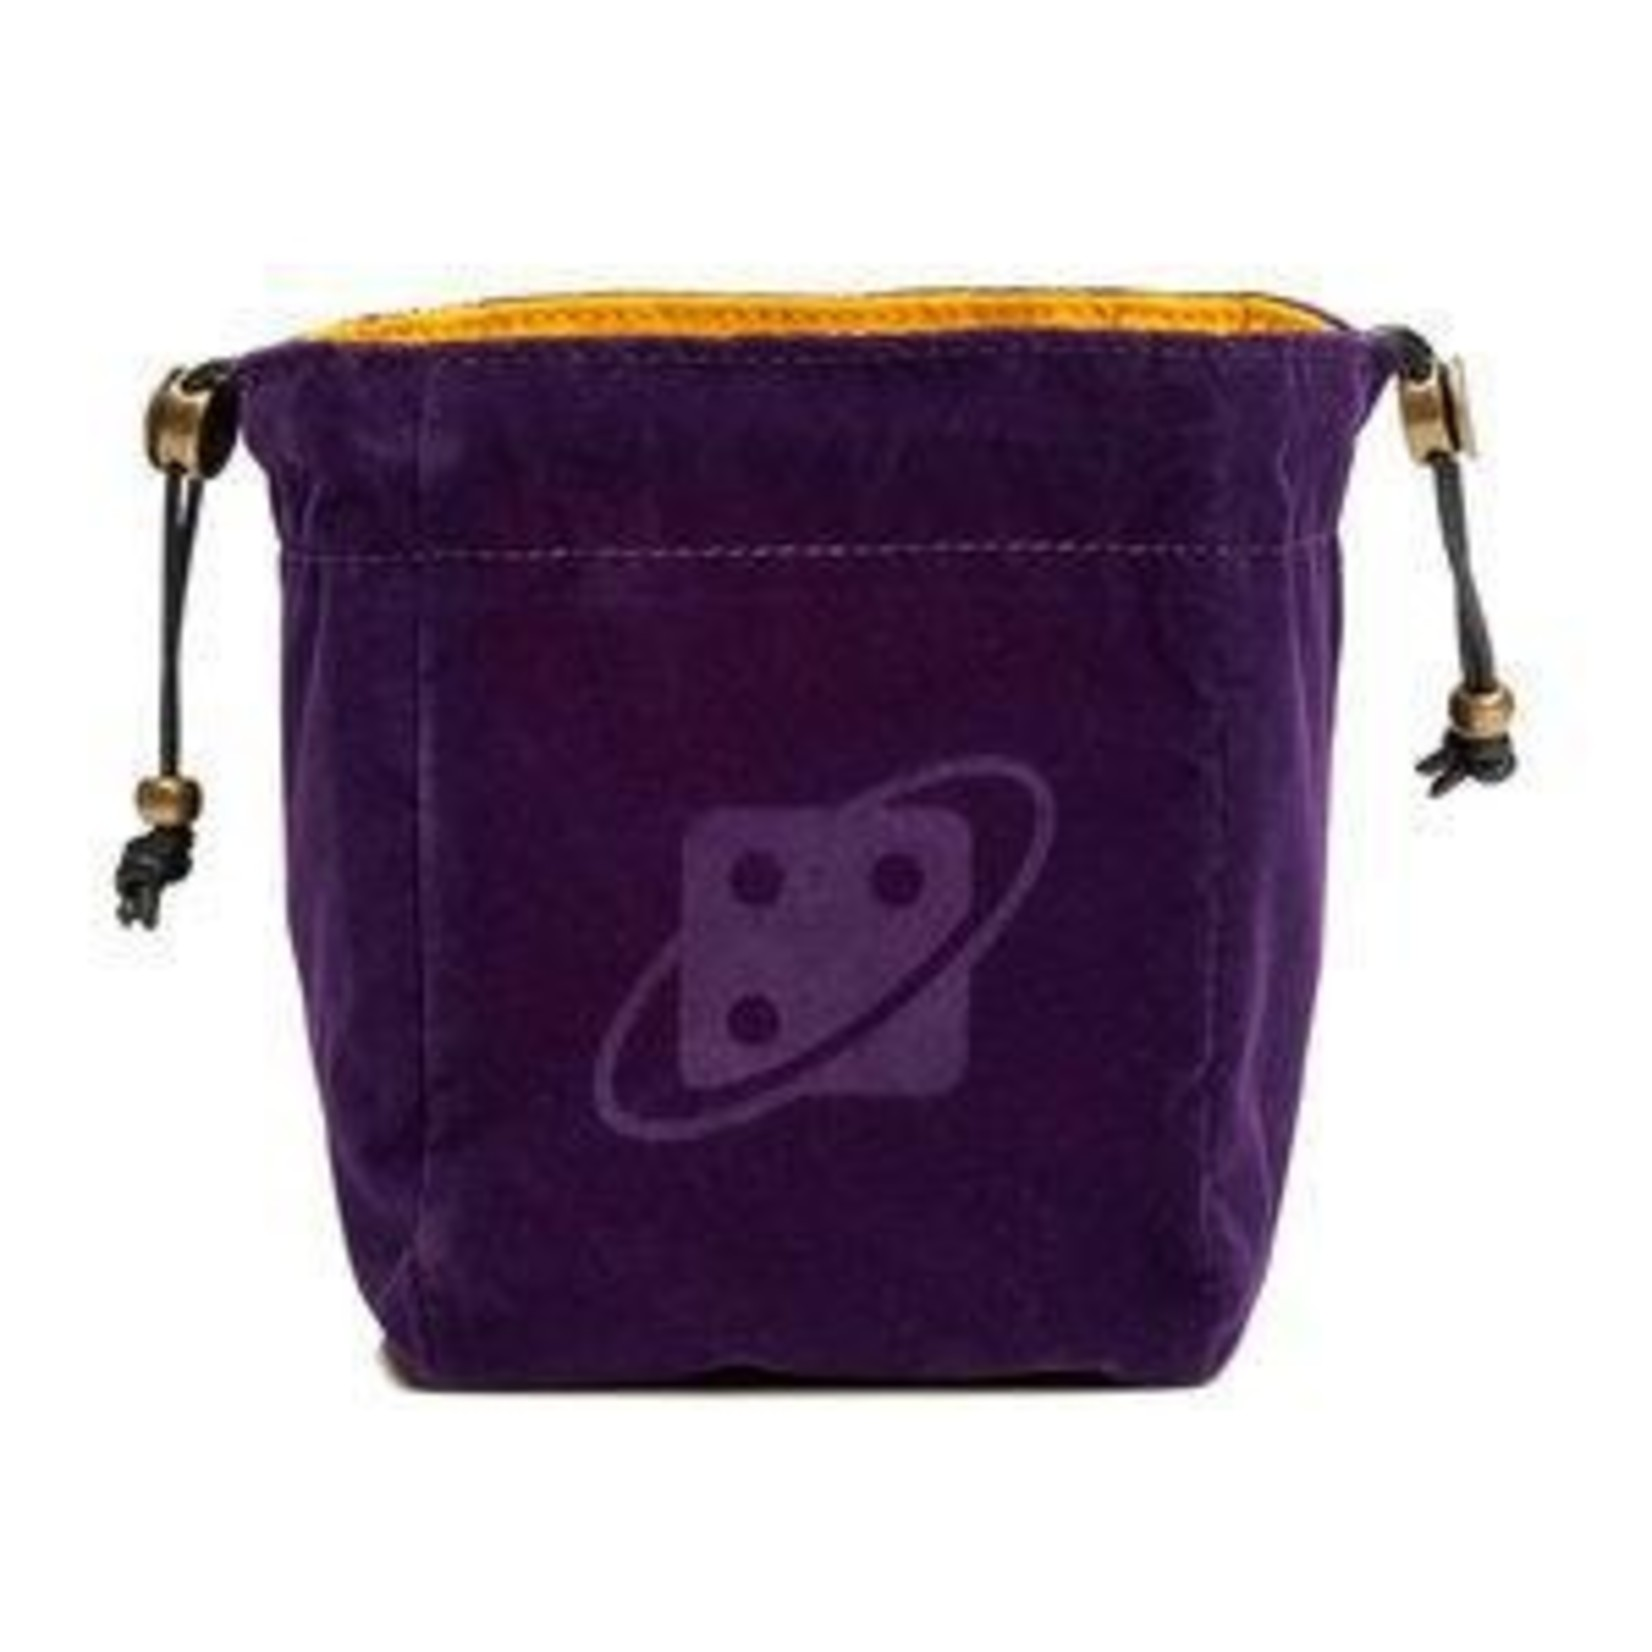 Dice Bag: Reversible - Purple and Gold, Brass Clasp